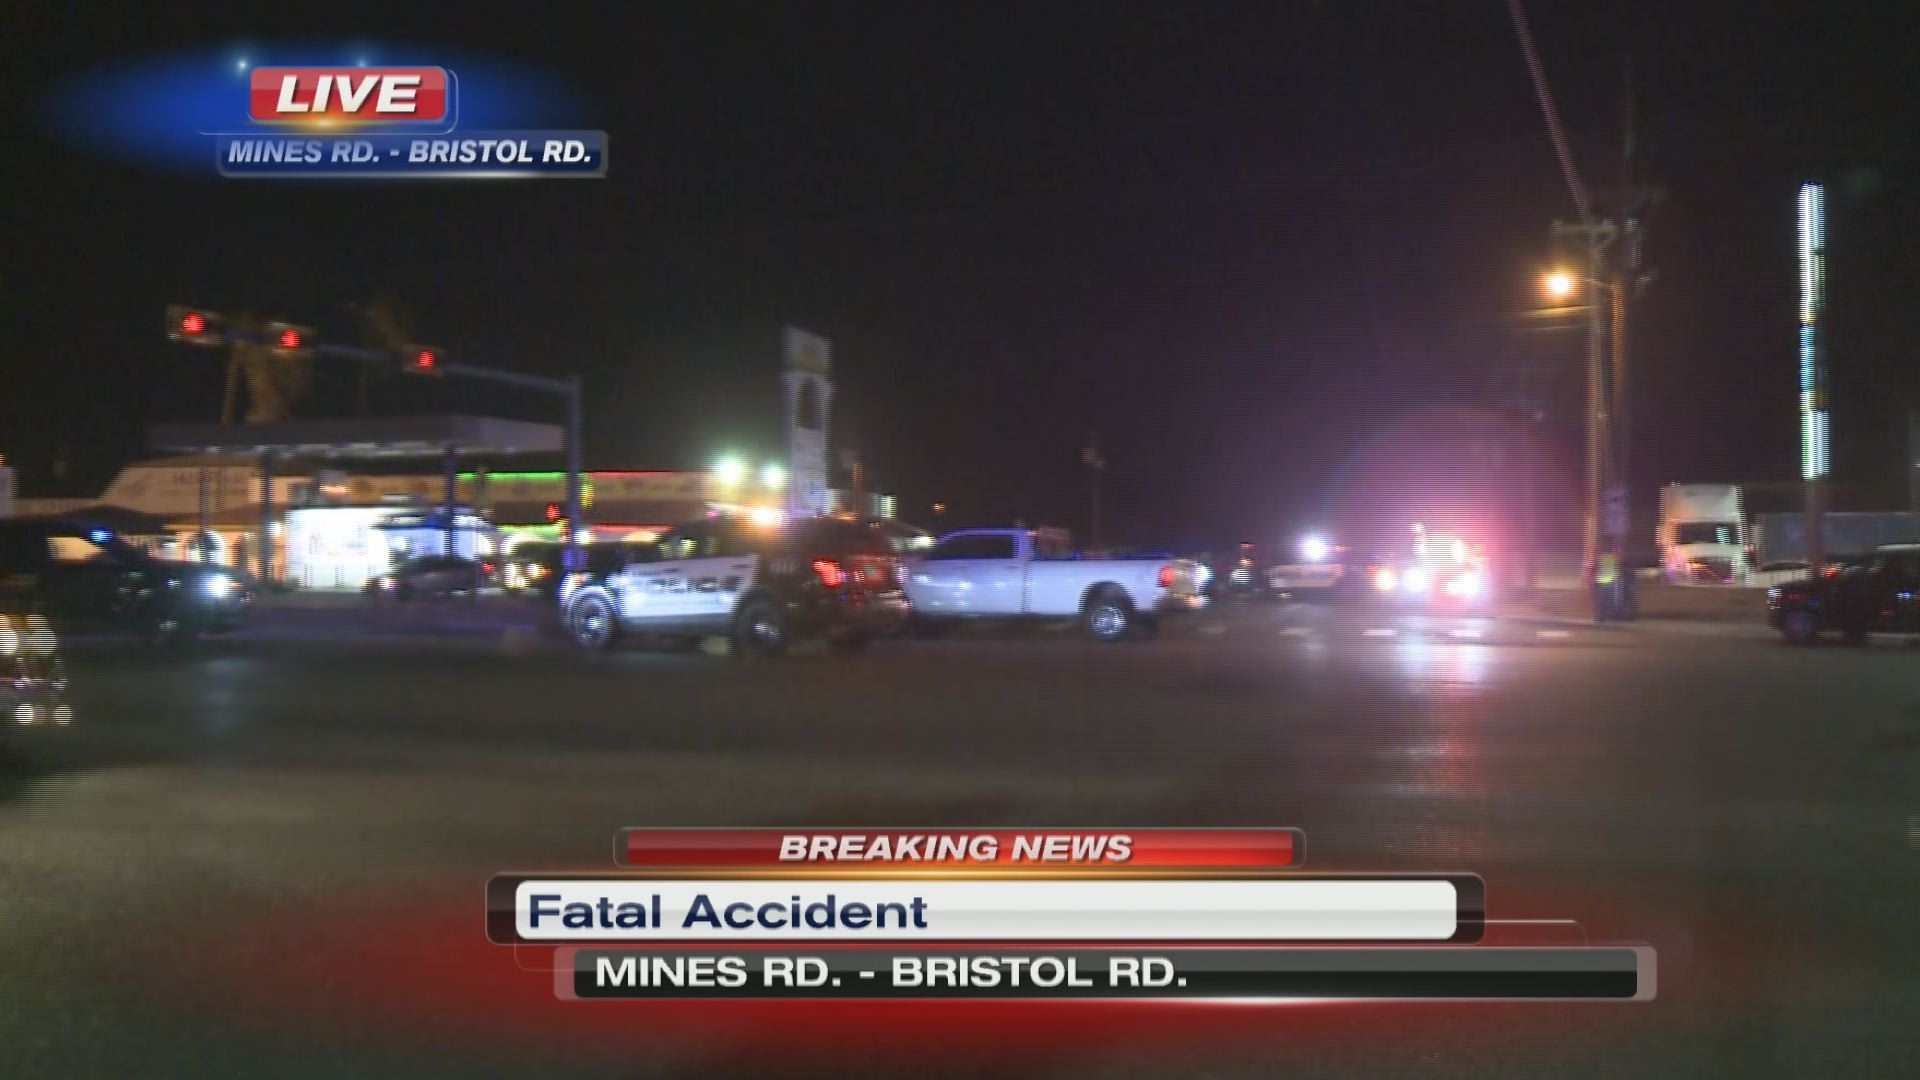 Fatal accident reported in the Mines Road area